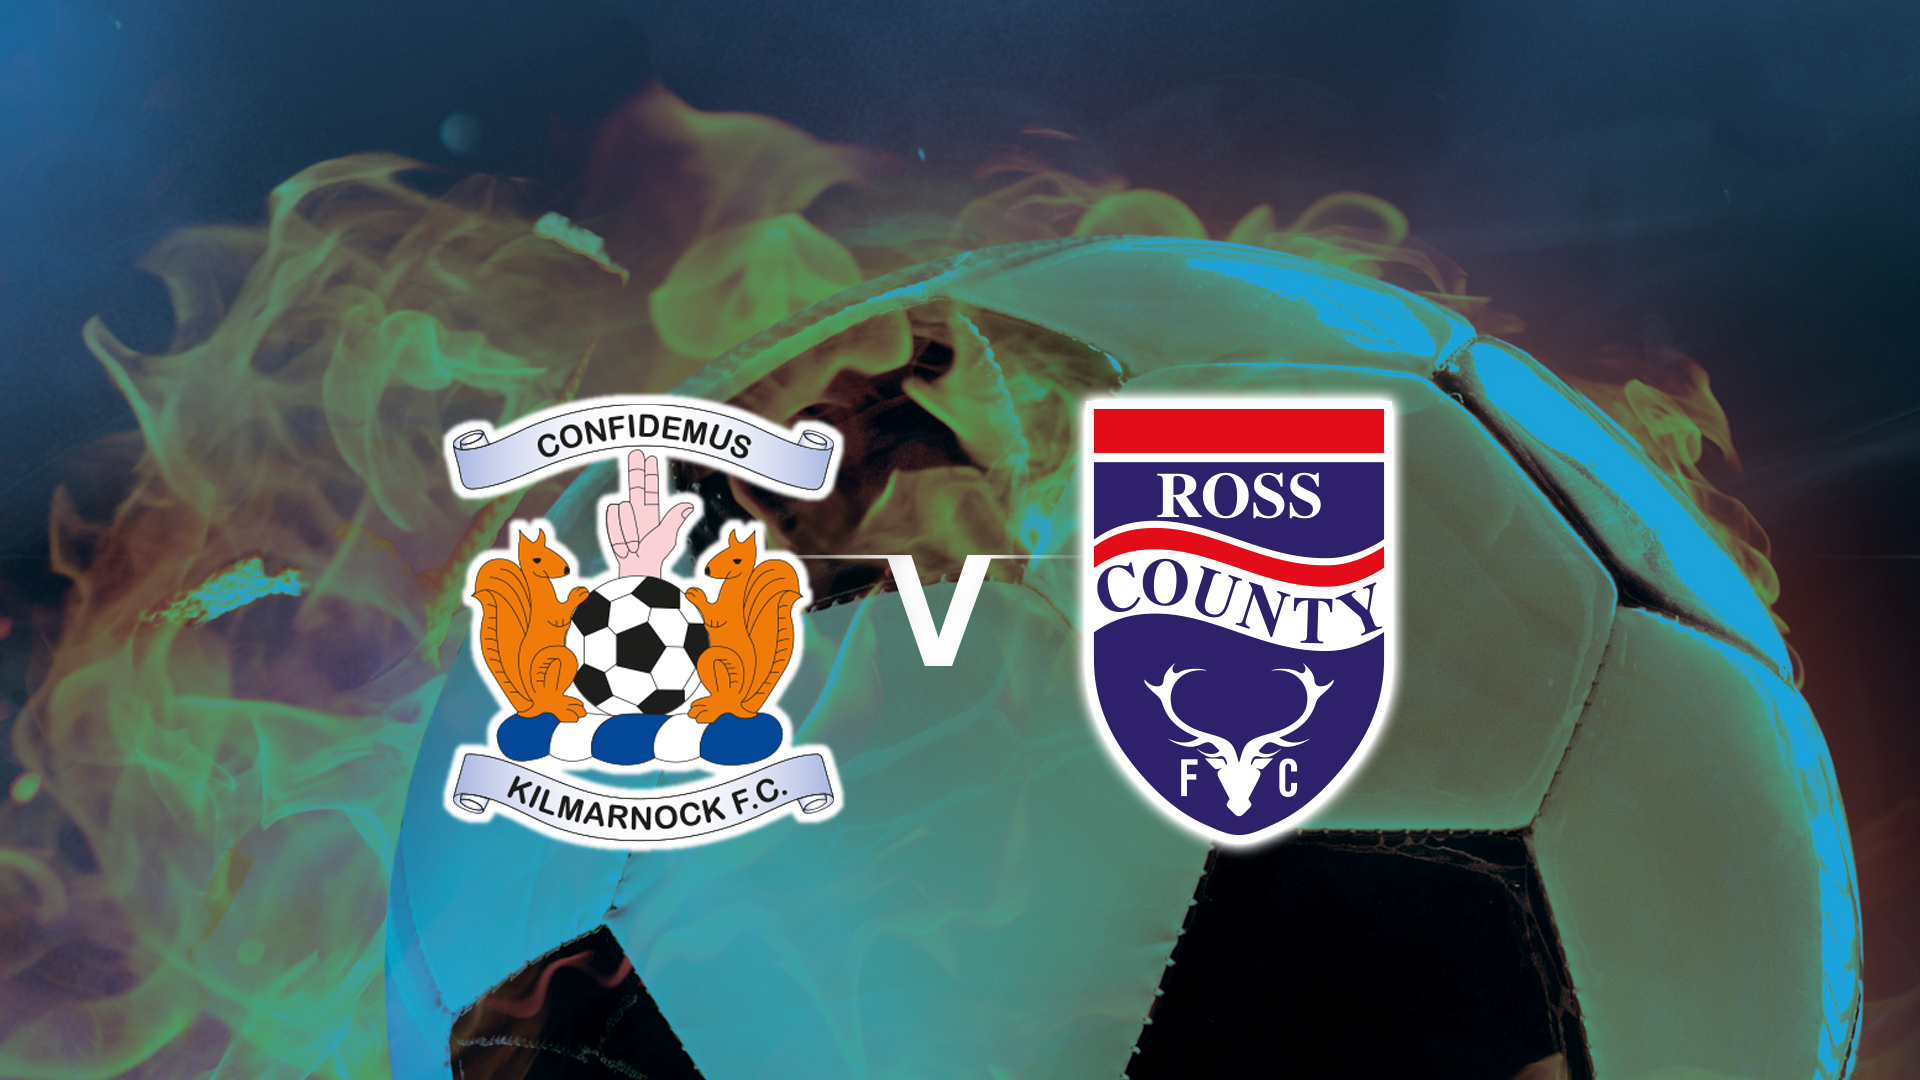 Match Day Offers, Kilmarnock Vs Ross County - Saturday 1st February